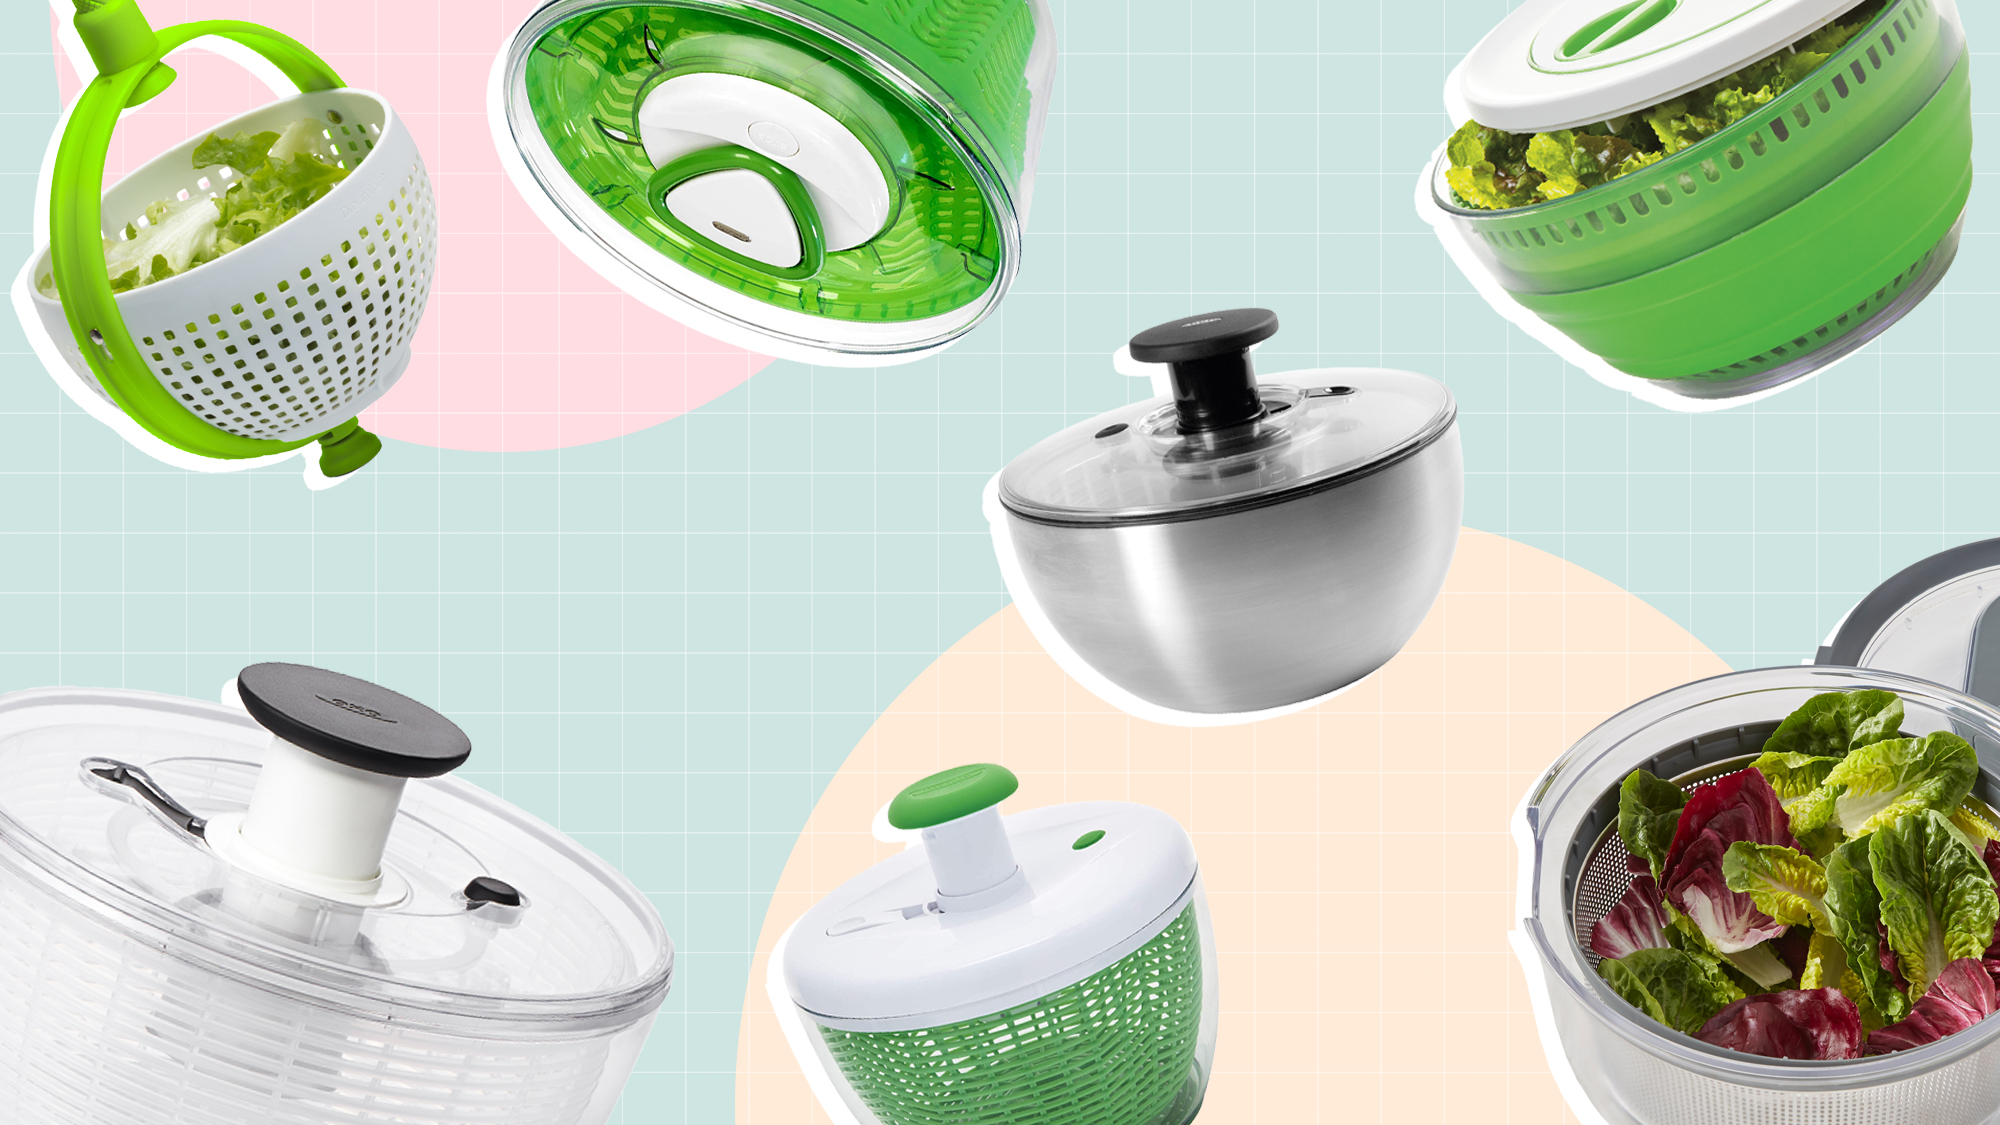 A selection of 7 salad spinners on a designed background